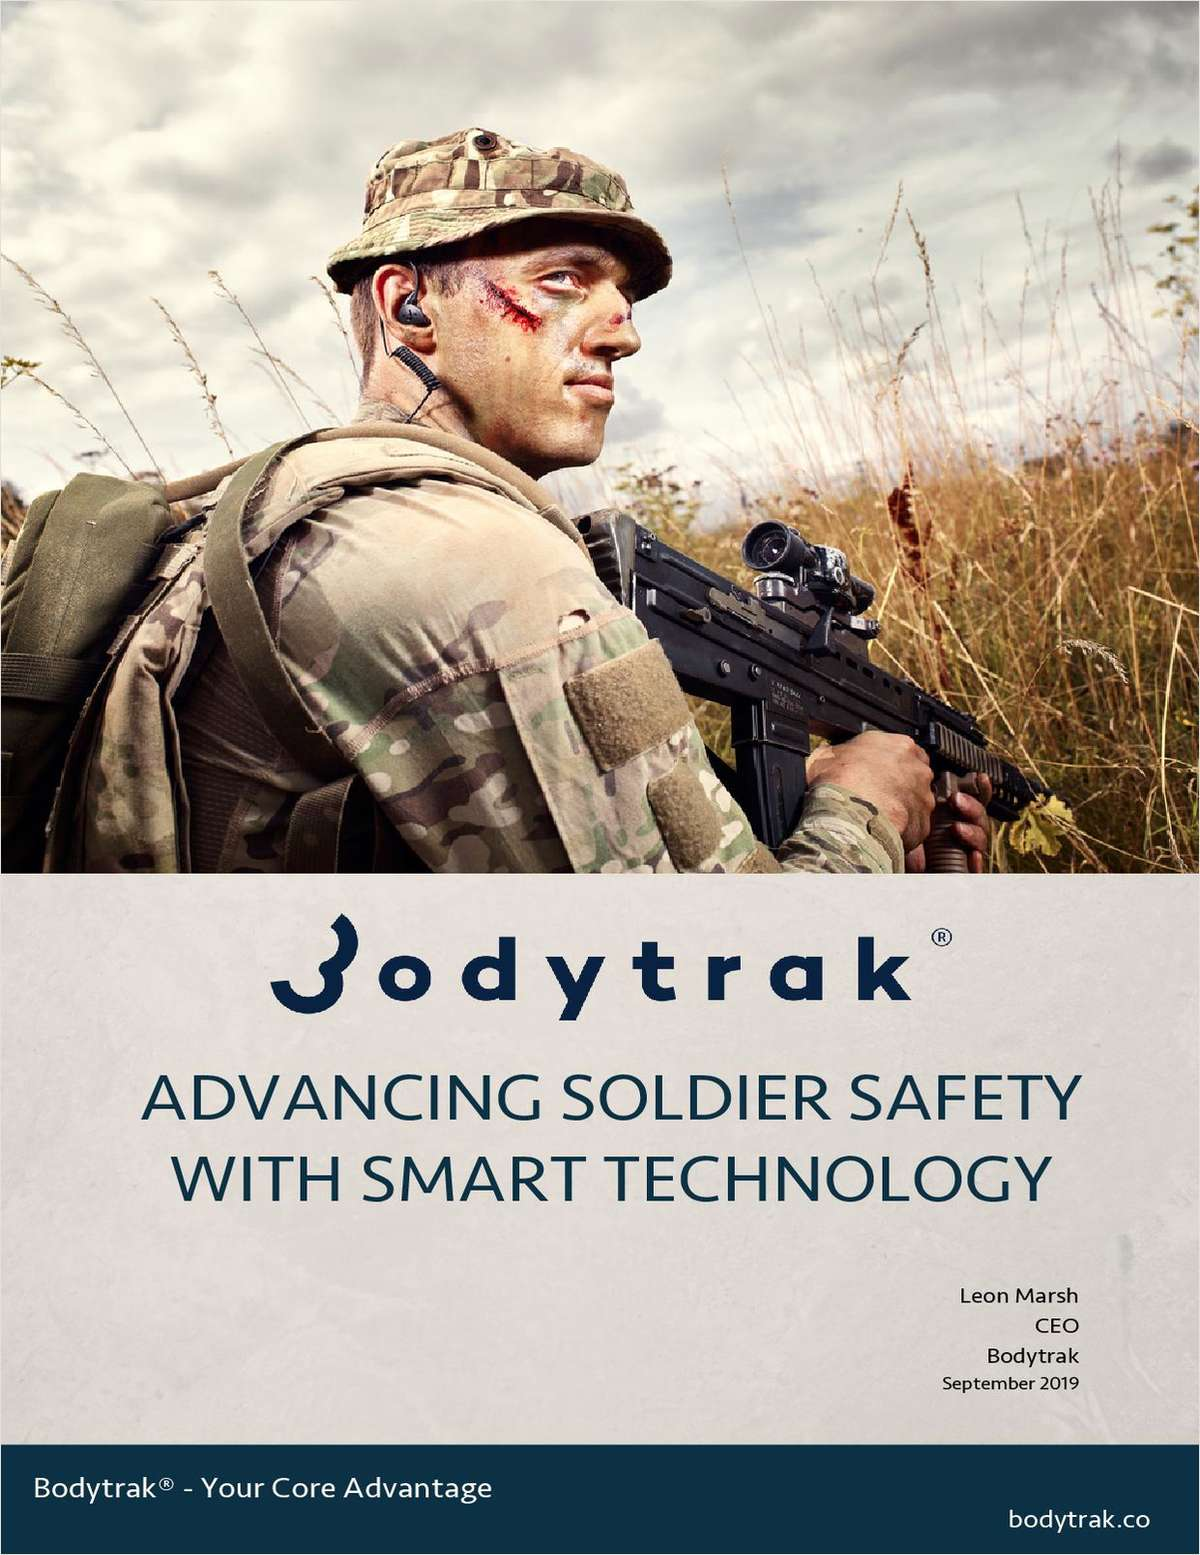 Advancing Soldier Safety with Smart Technology